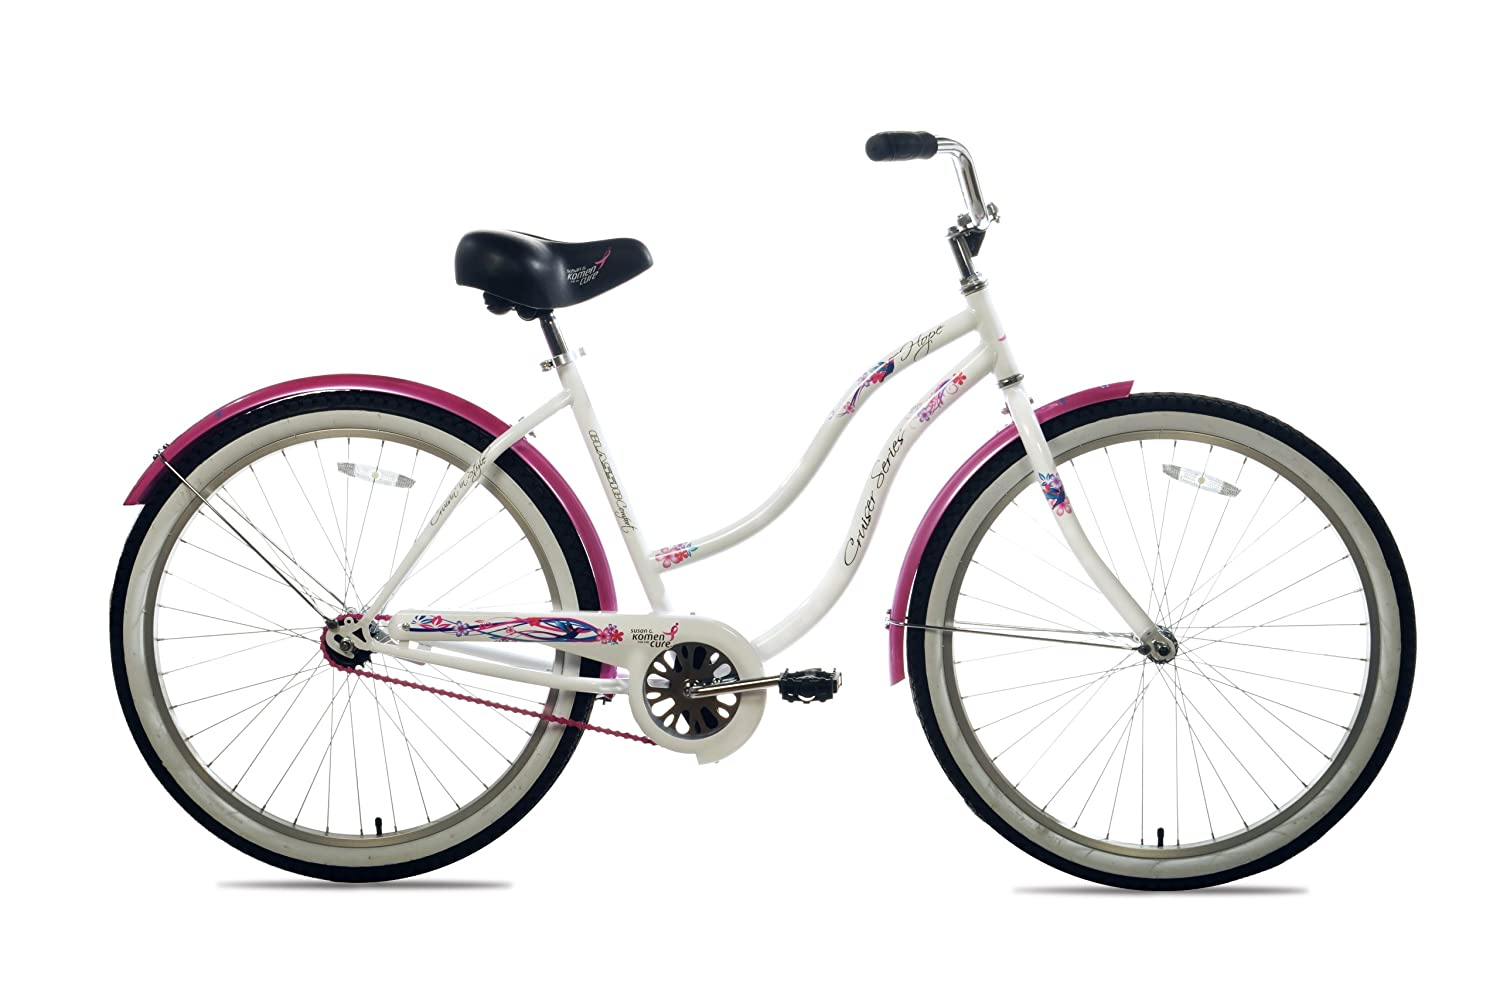 The Best Beach Cruiser Bikes for Women 4